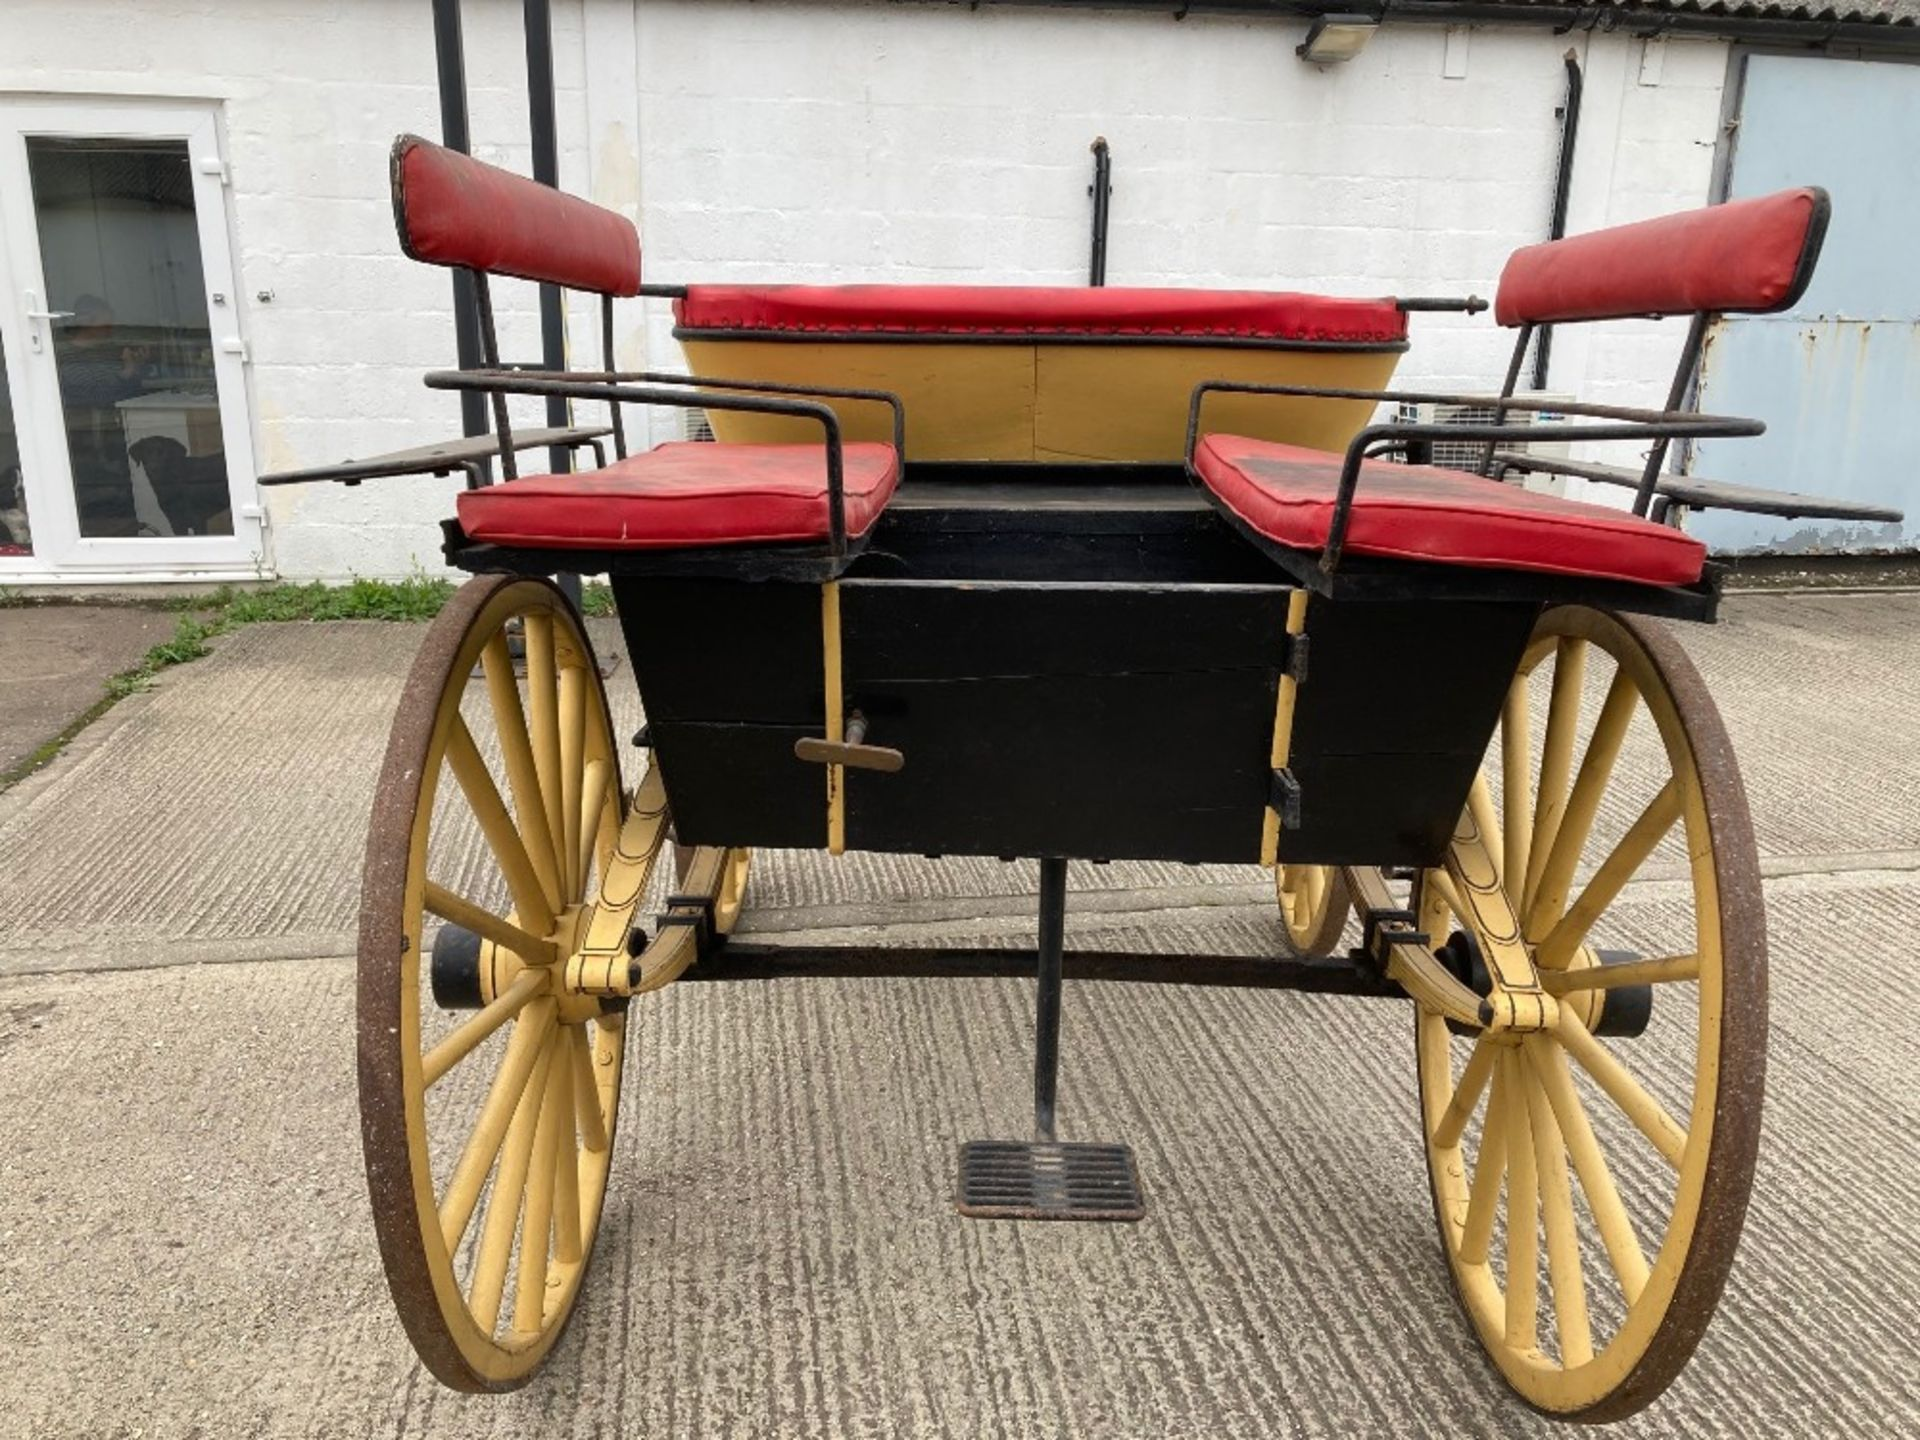 WAGONETTE built by C. Hazzote of Lubecourt to suit a single.  Lot 12 is located near Bognor Regis - Image 4 of 11